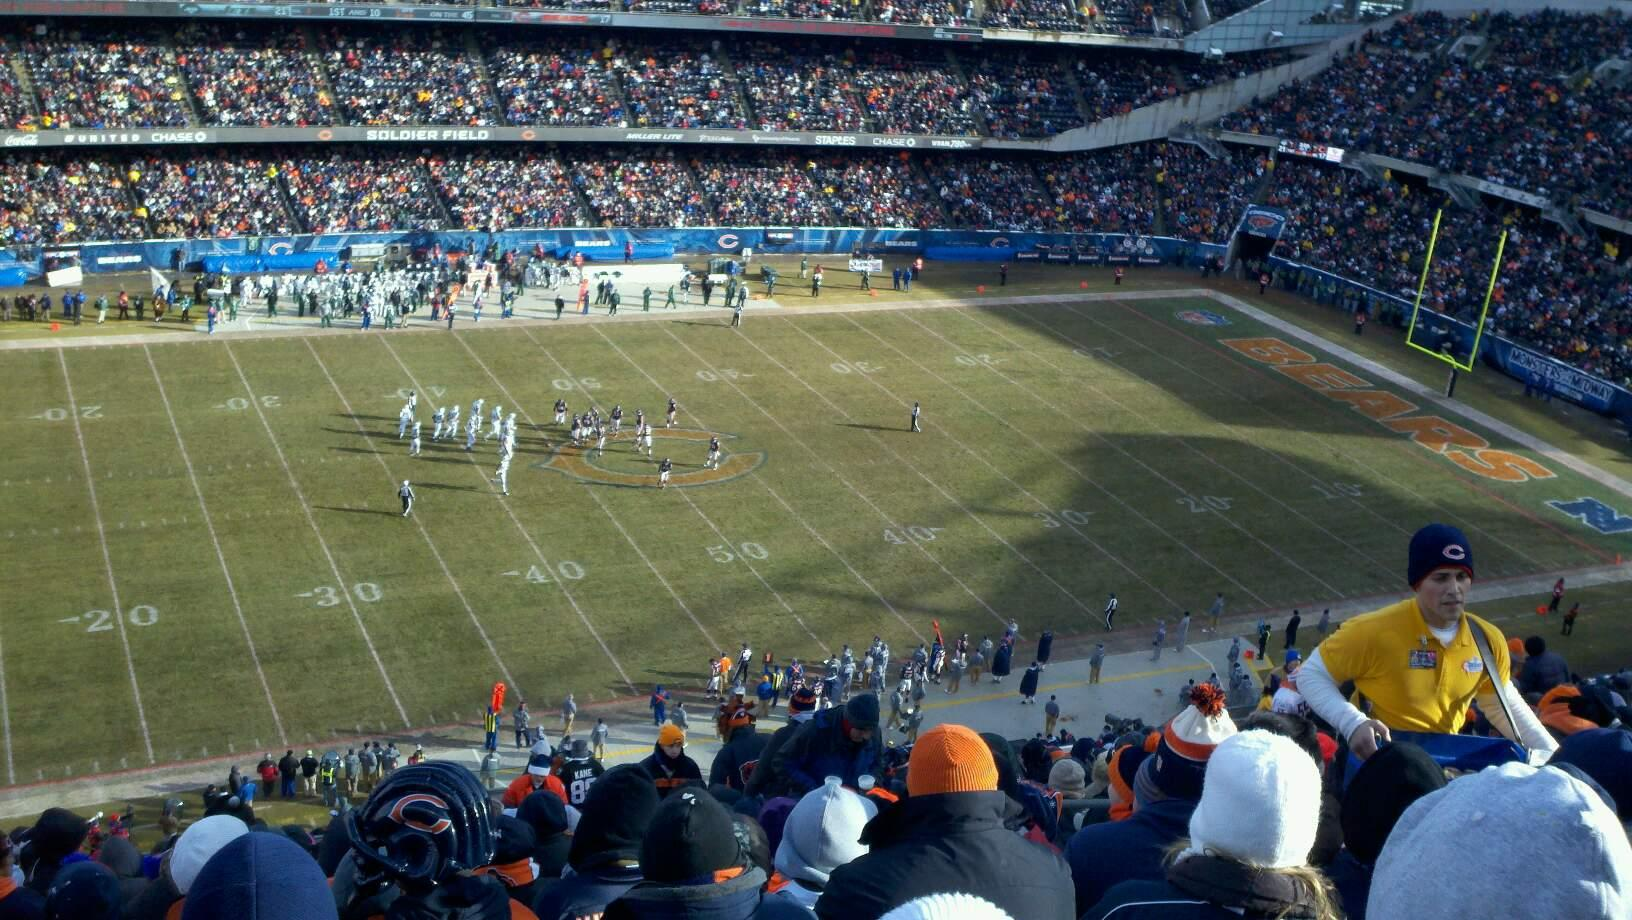 Soldier Field Section 440 Row 22 Seat 15